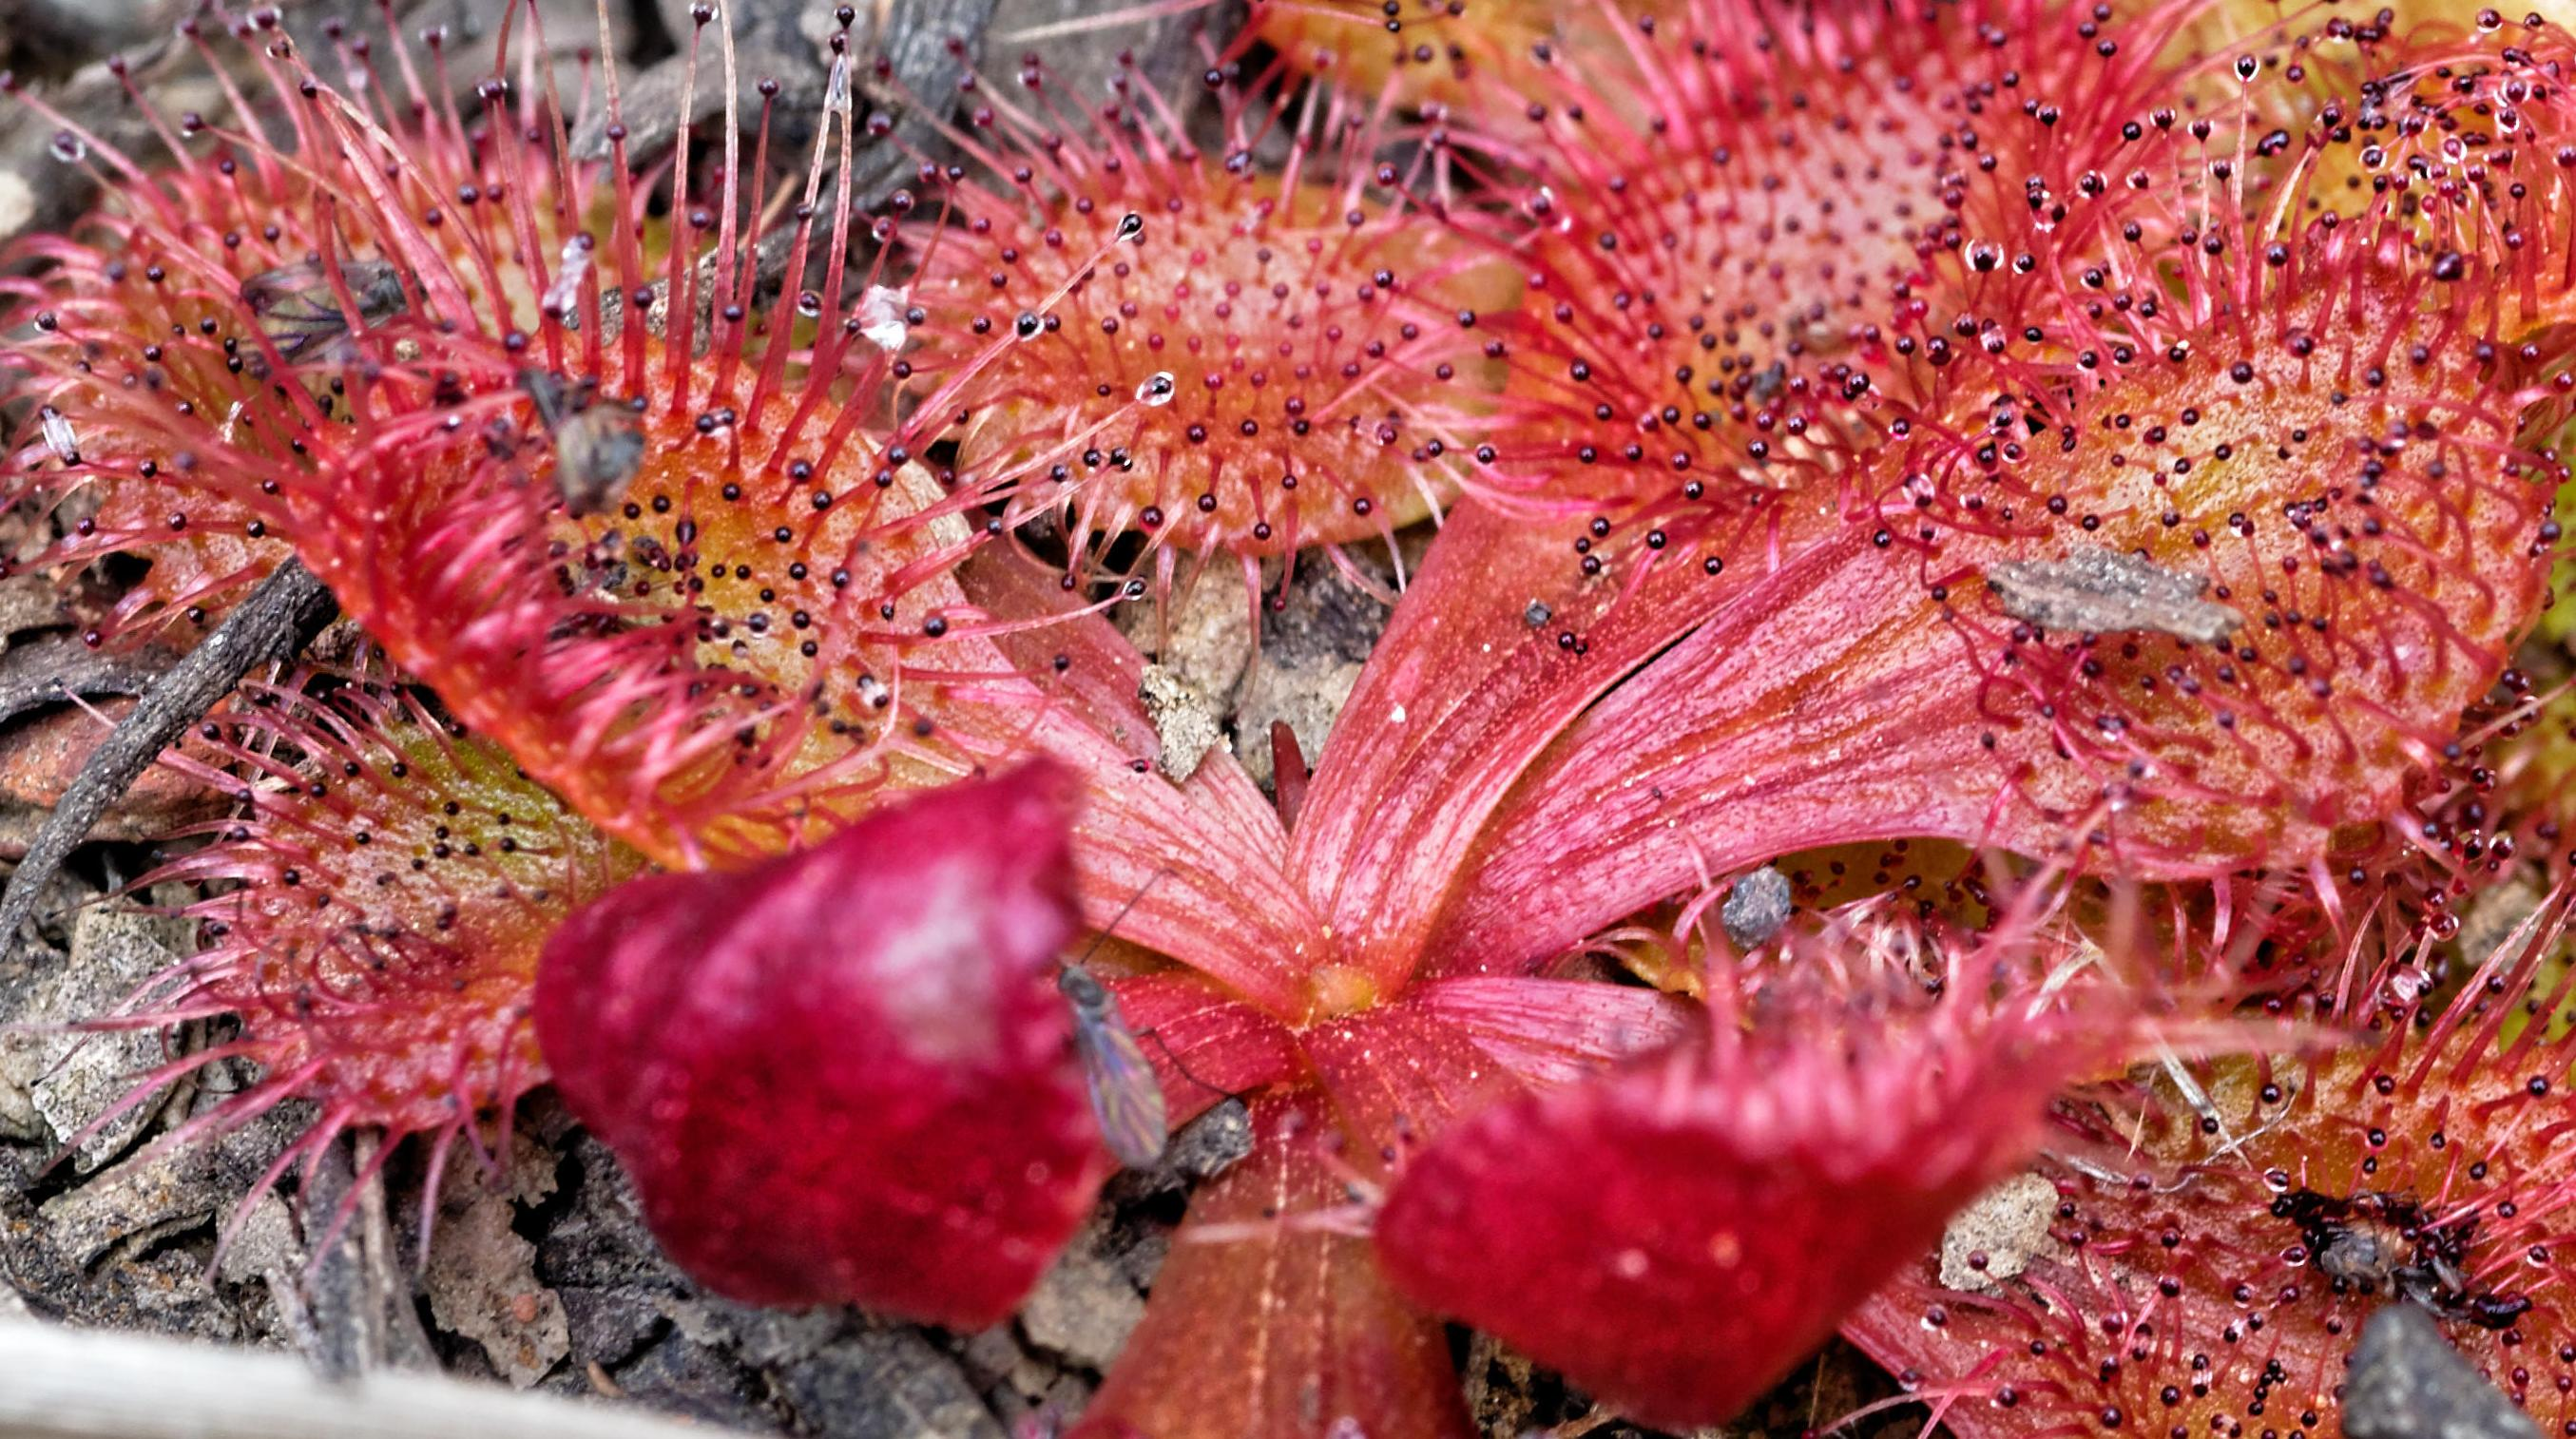 This should be Drosera-4-detail.jpeg.  Is it missing?